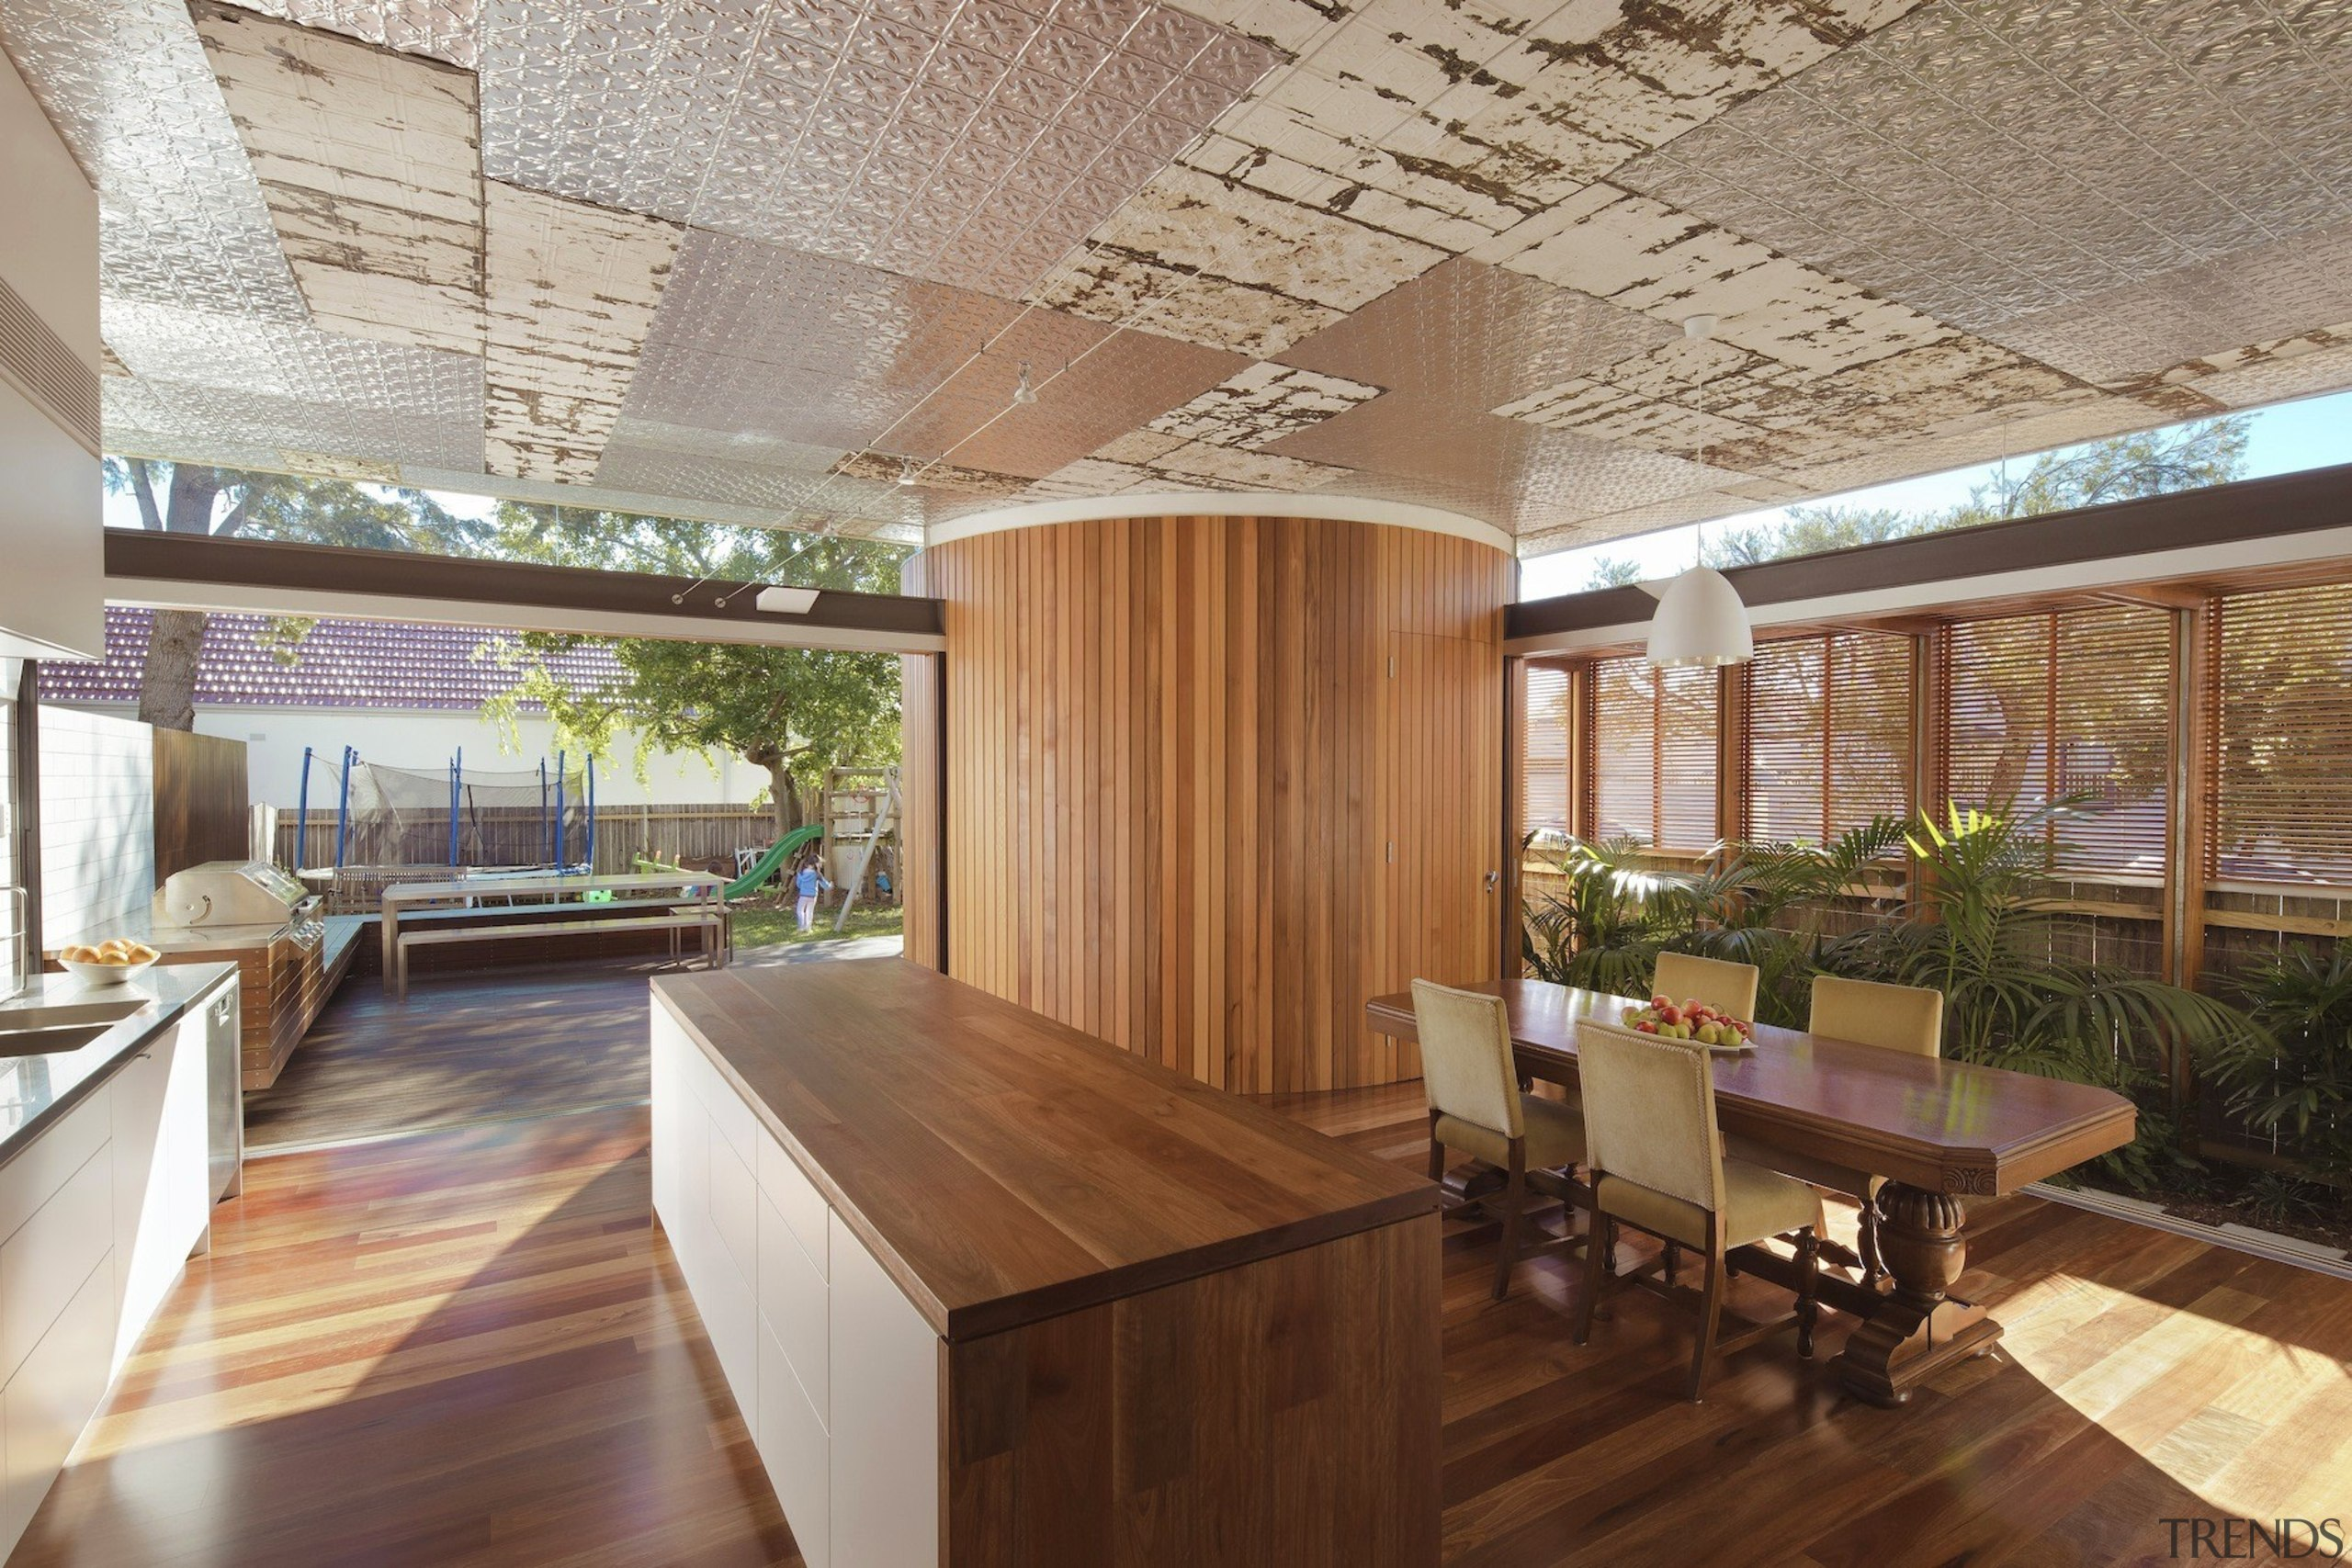 CplusC Architectural Workshop architecture, ceiling, flooring, hardwood, house, interior design, lobby, real estate, roof, wood, brown, gray